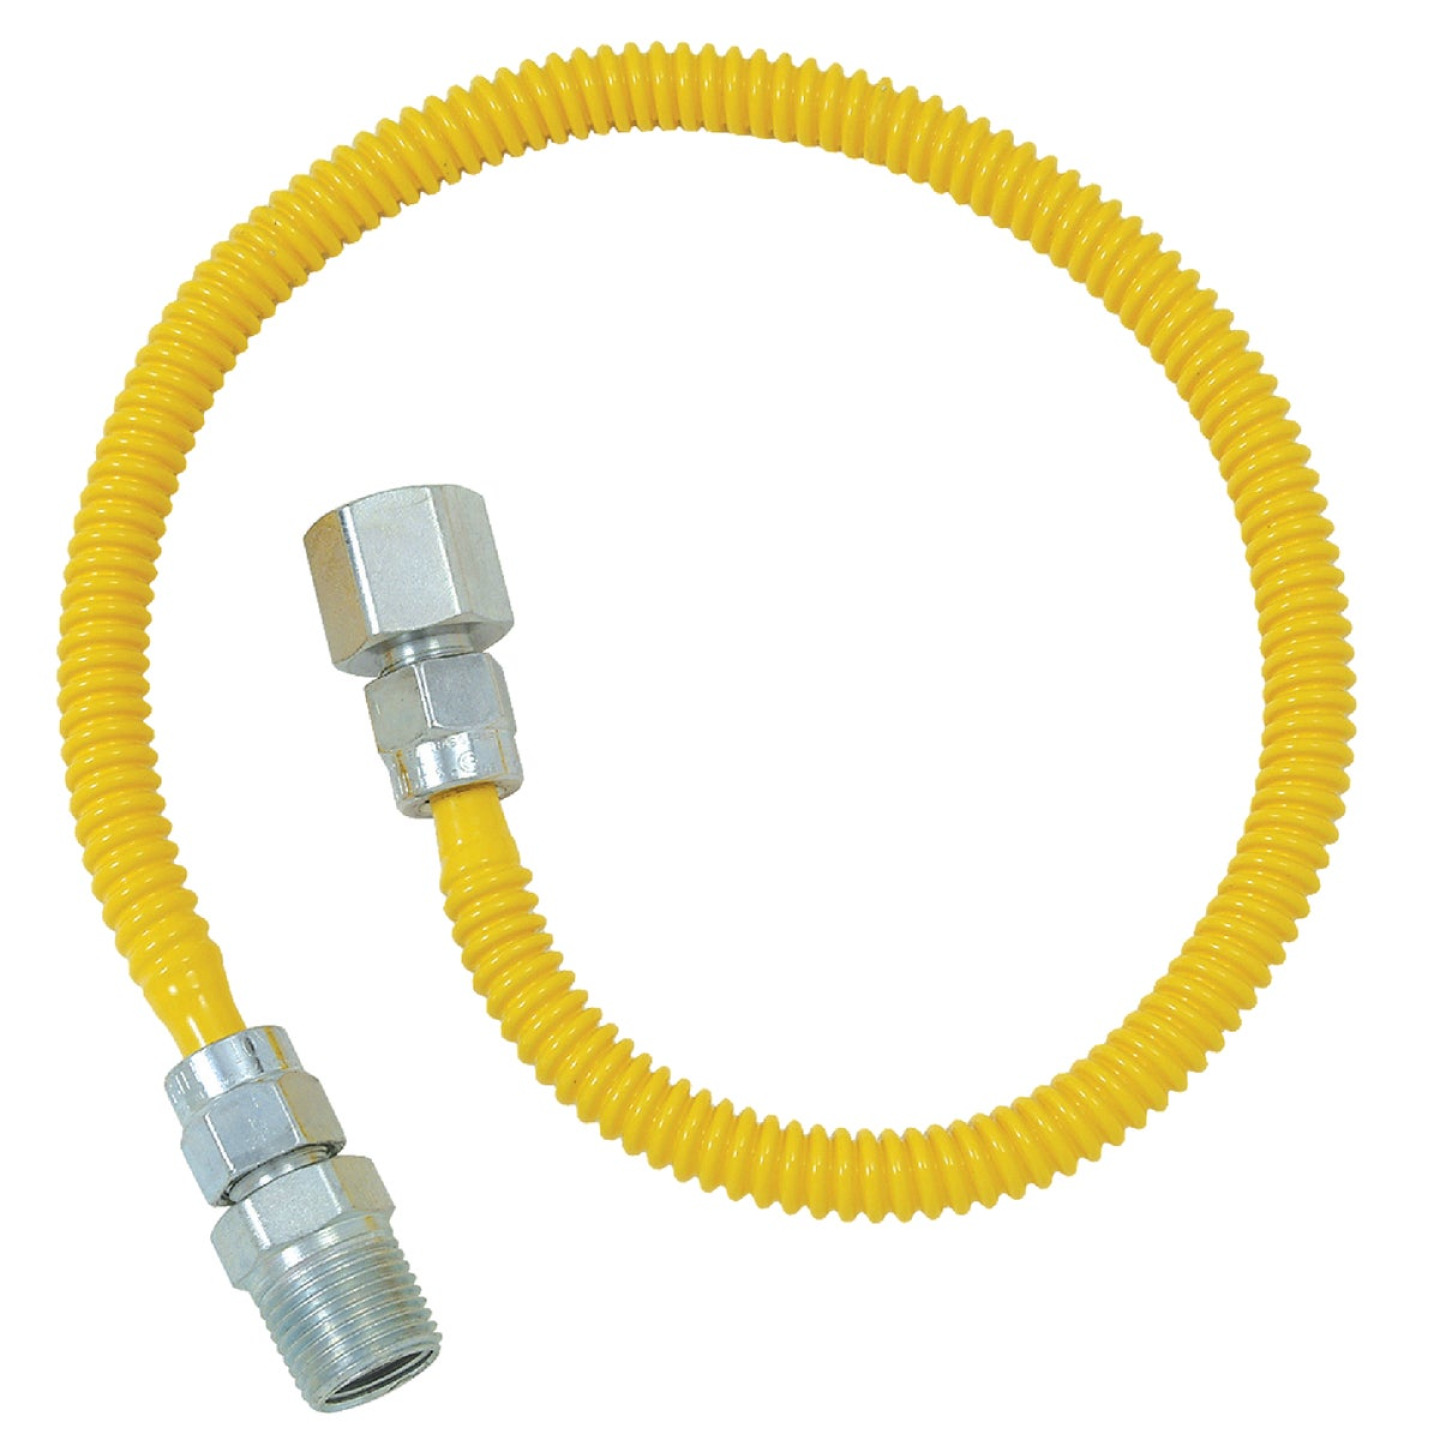 Dormont 3/8 In. OD x 36 In. Coated Stainless Steel Gas Connector, 1/2 In. FIP x 1/2 In. MIP (Tapped 3/8 In. FIP) Image 1